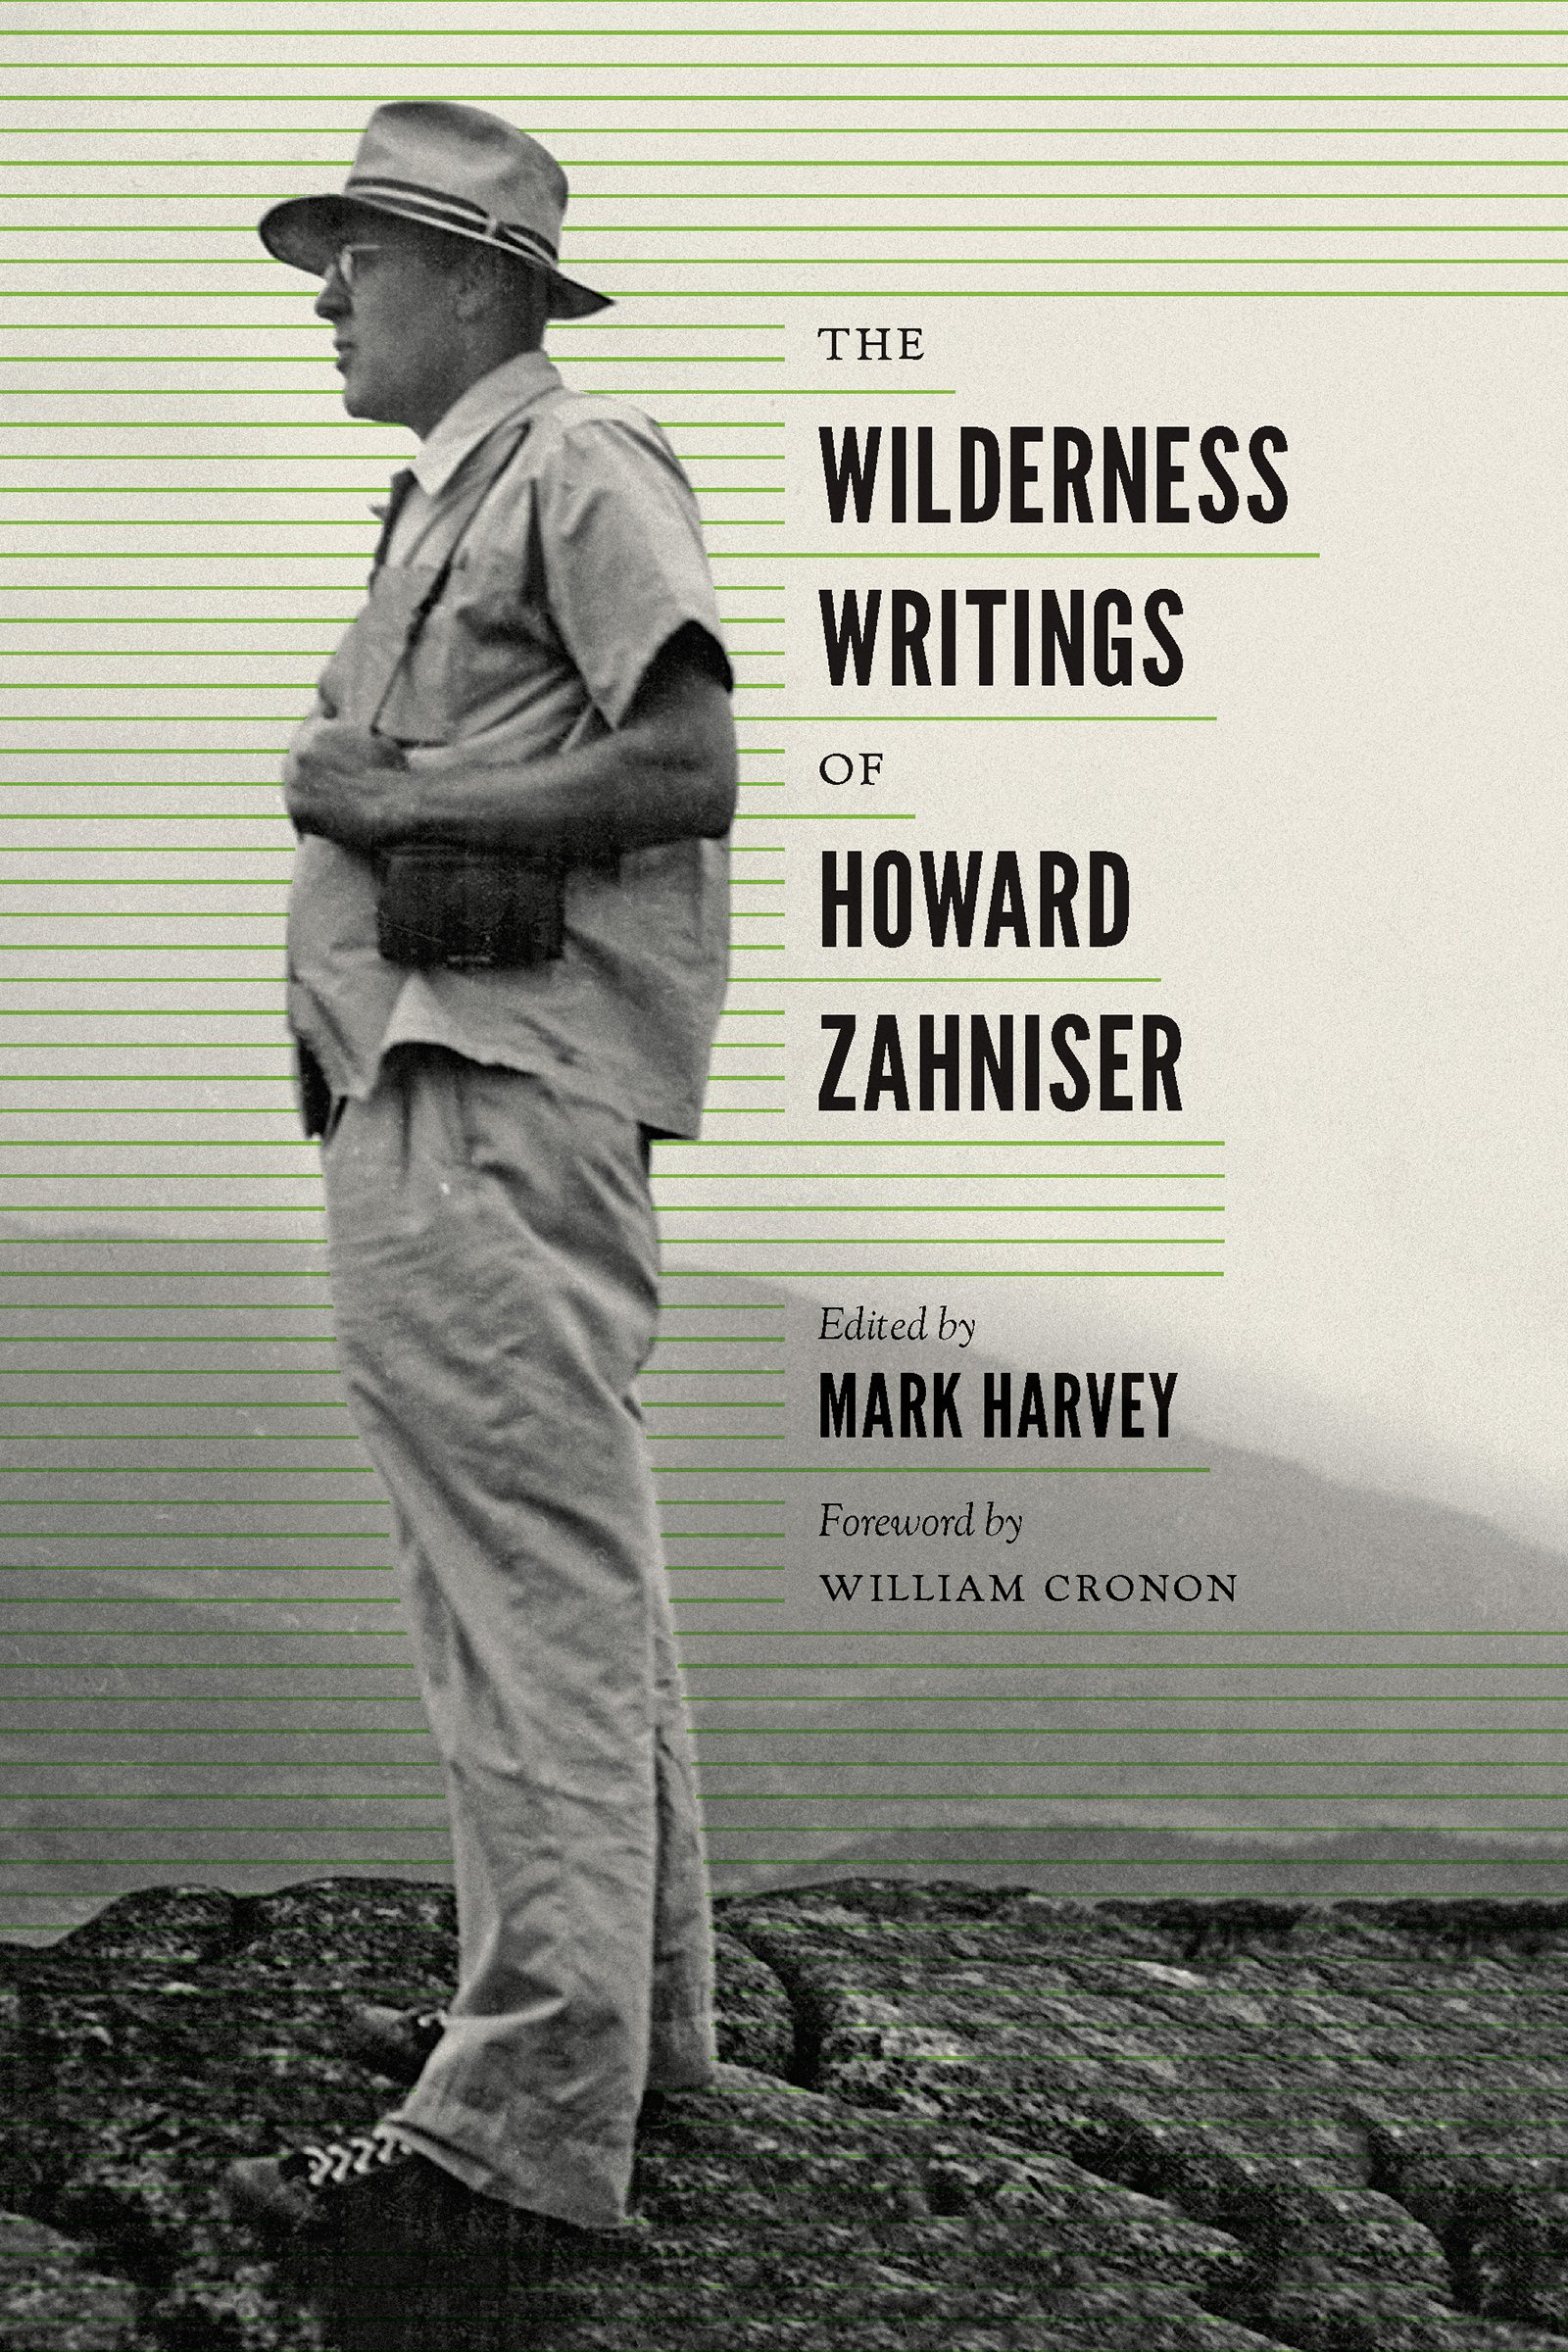 The Wilderness Writings of Howard Zahniser (Weyerhaeuser